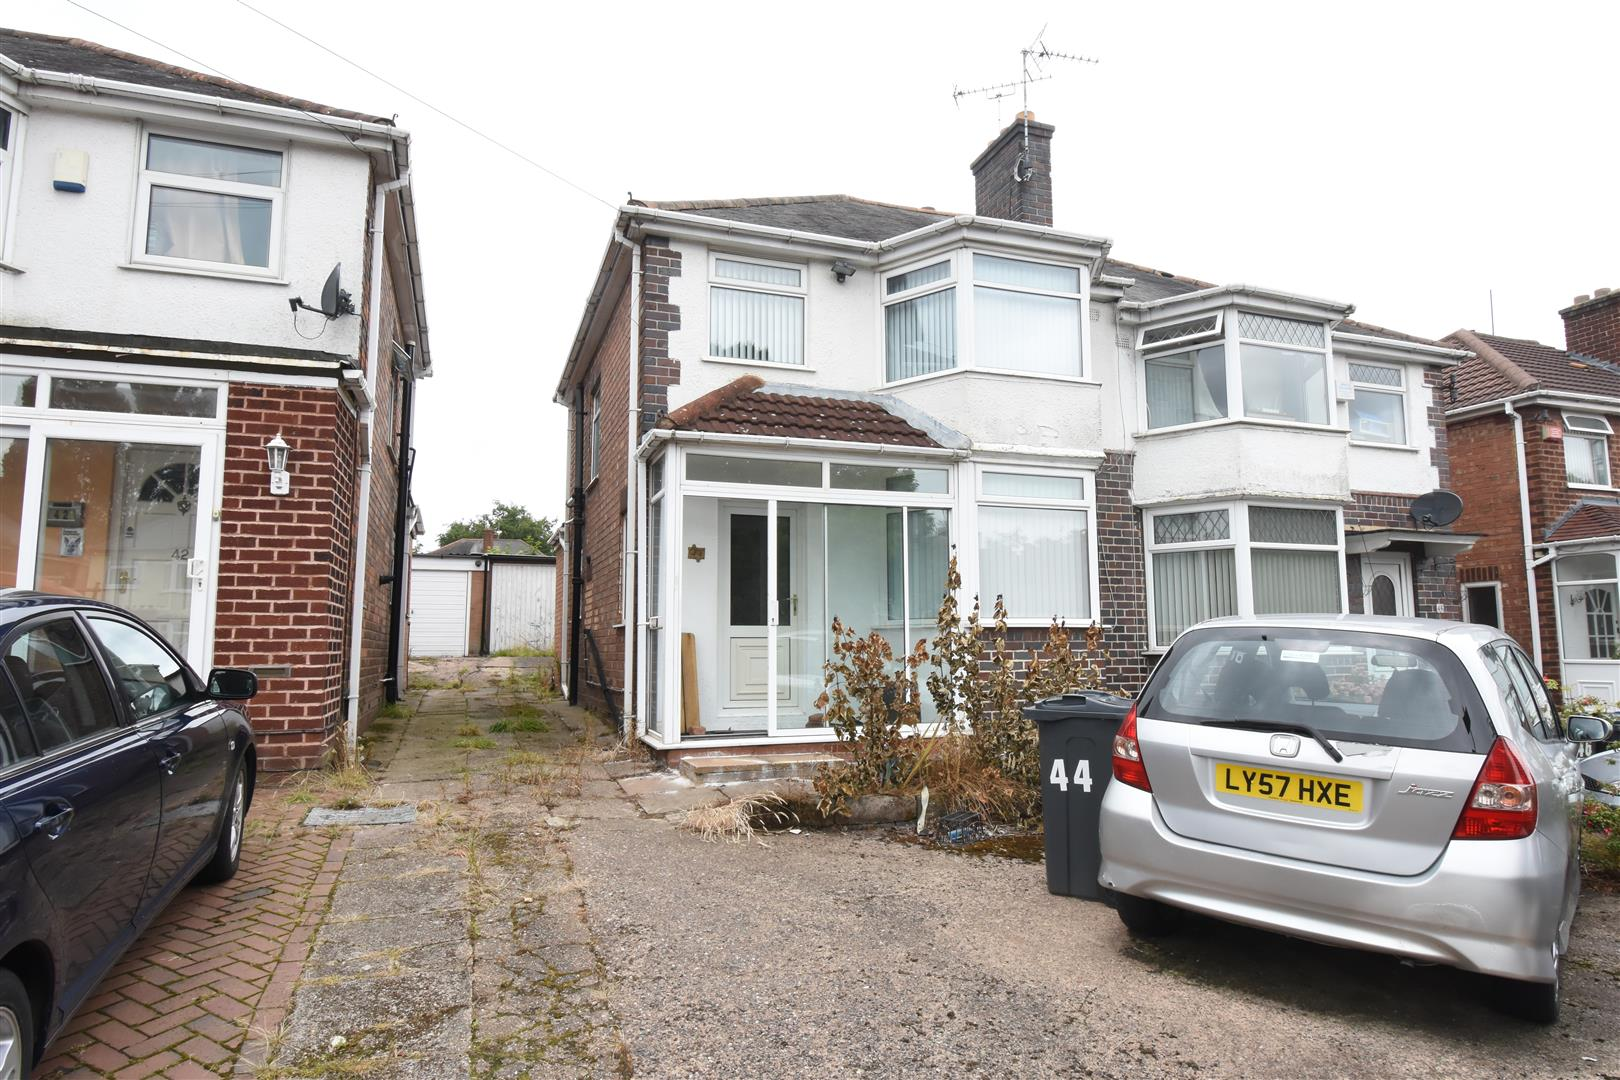 3 bed house for sale in Oakdale Road, Birmingham - Property Image 1